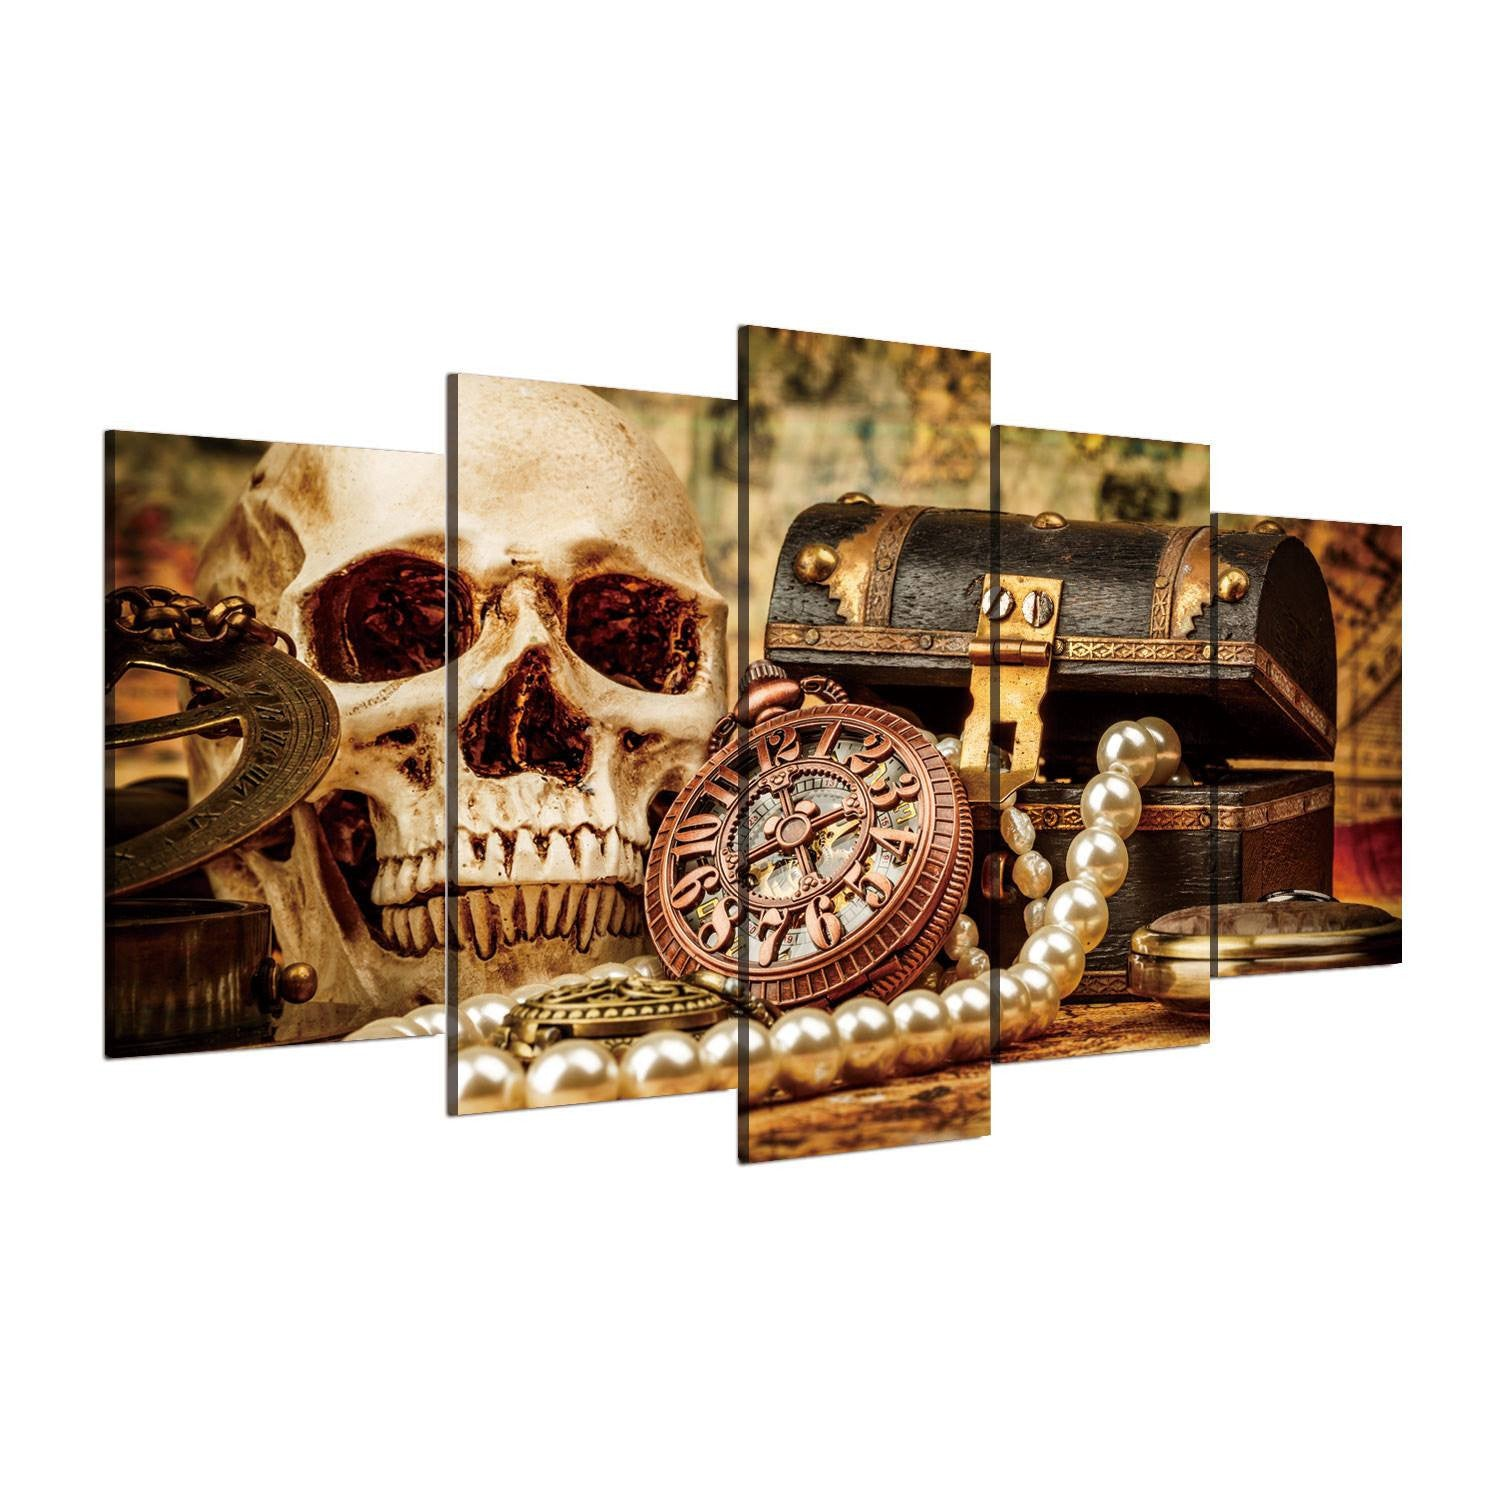 Ancient skull treasure chest 5 piece canvas wall art vigor and whim ancient skull treasure chest 5 piece canvas wall art publicscrutiny Image collections